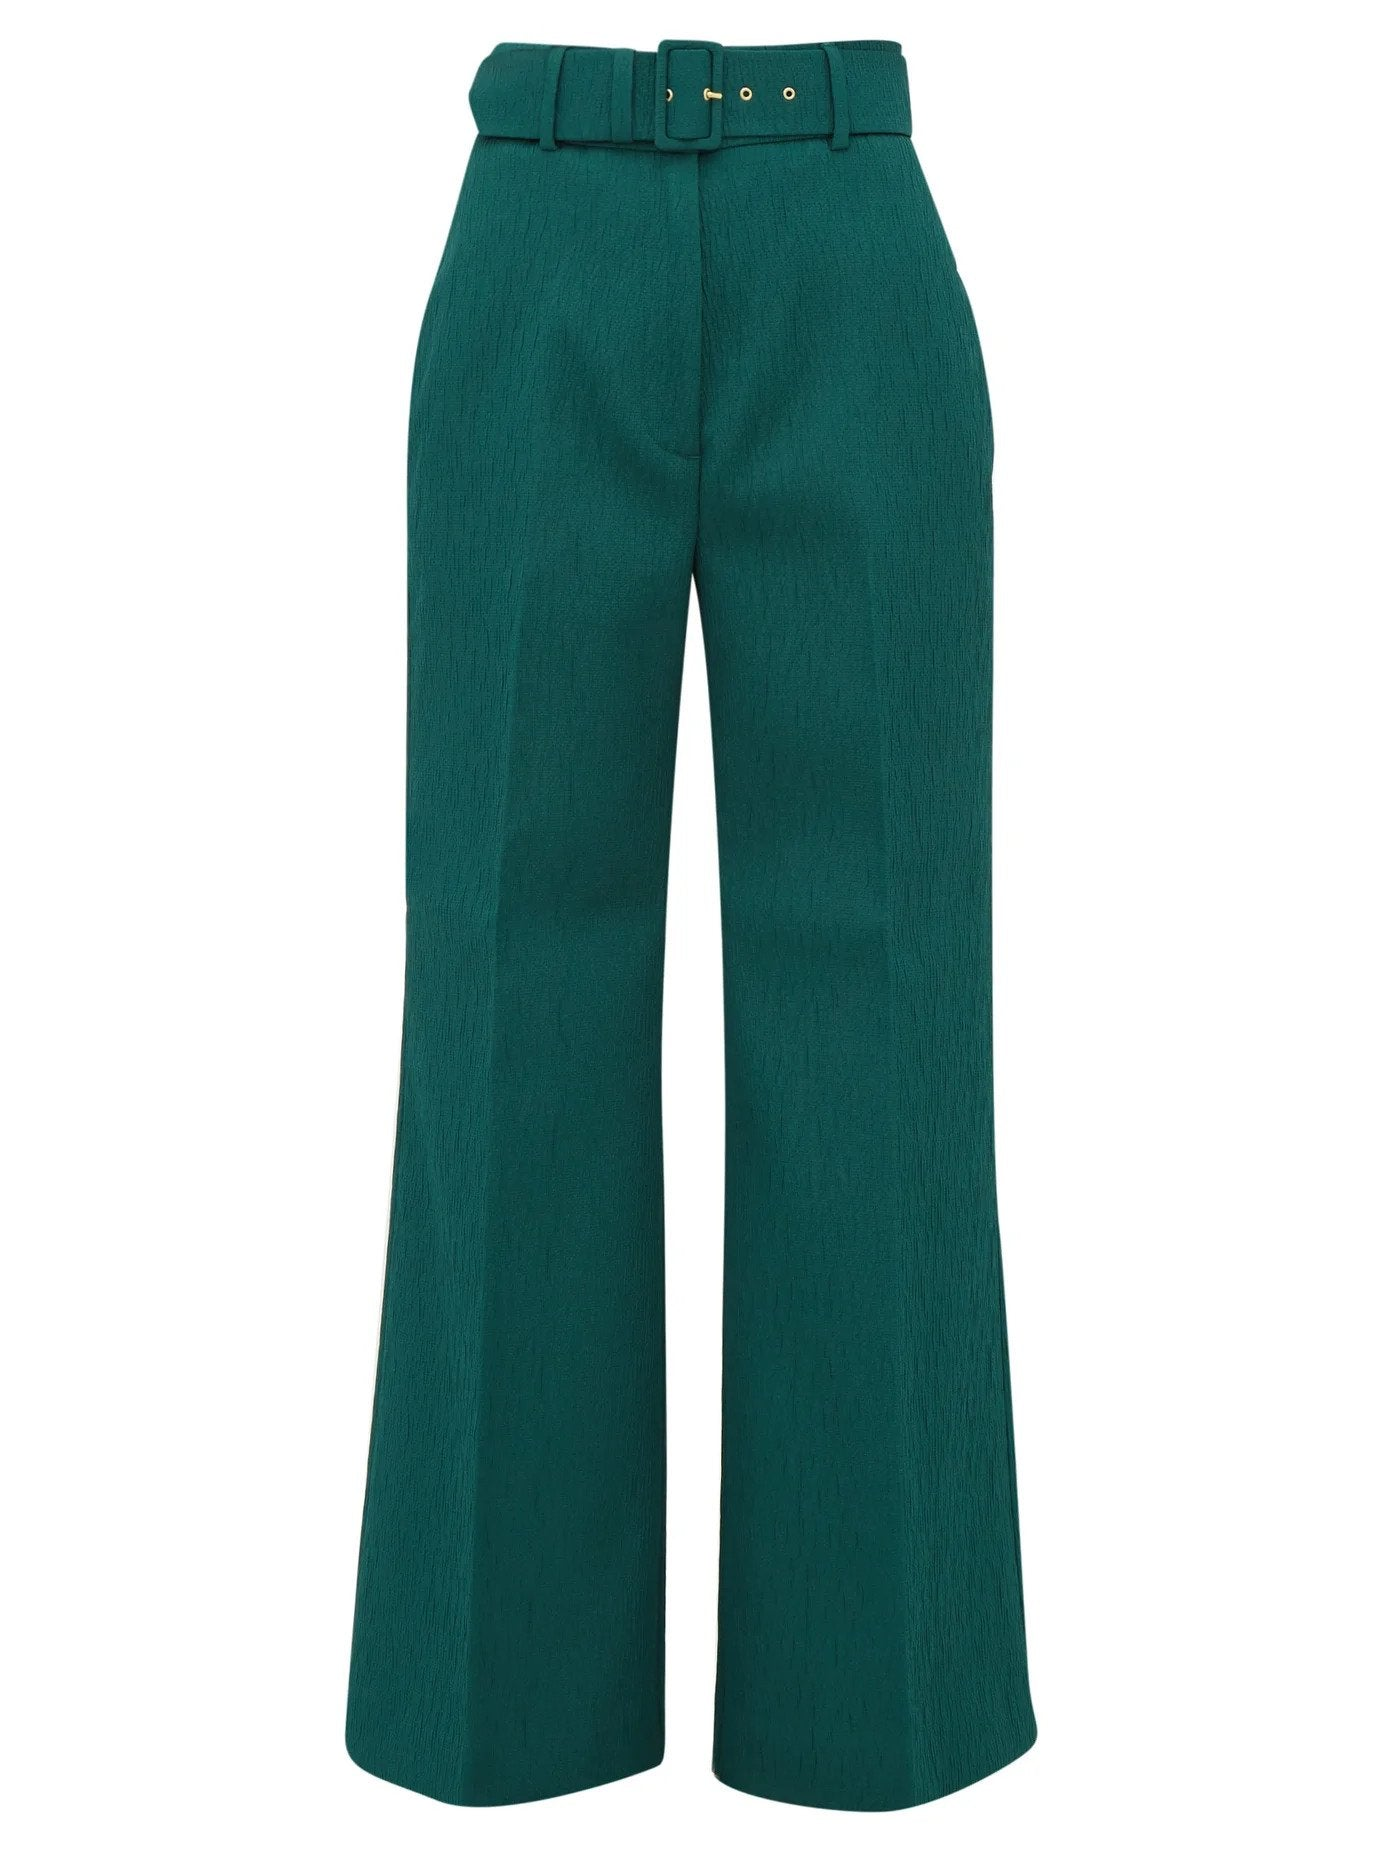 Jana Trousers